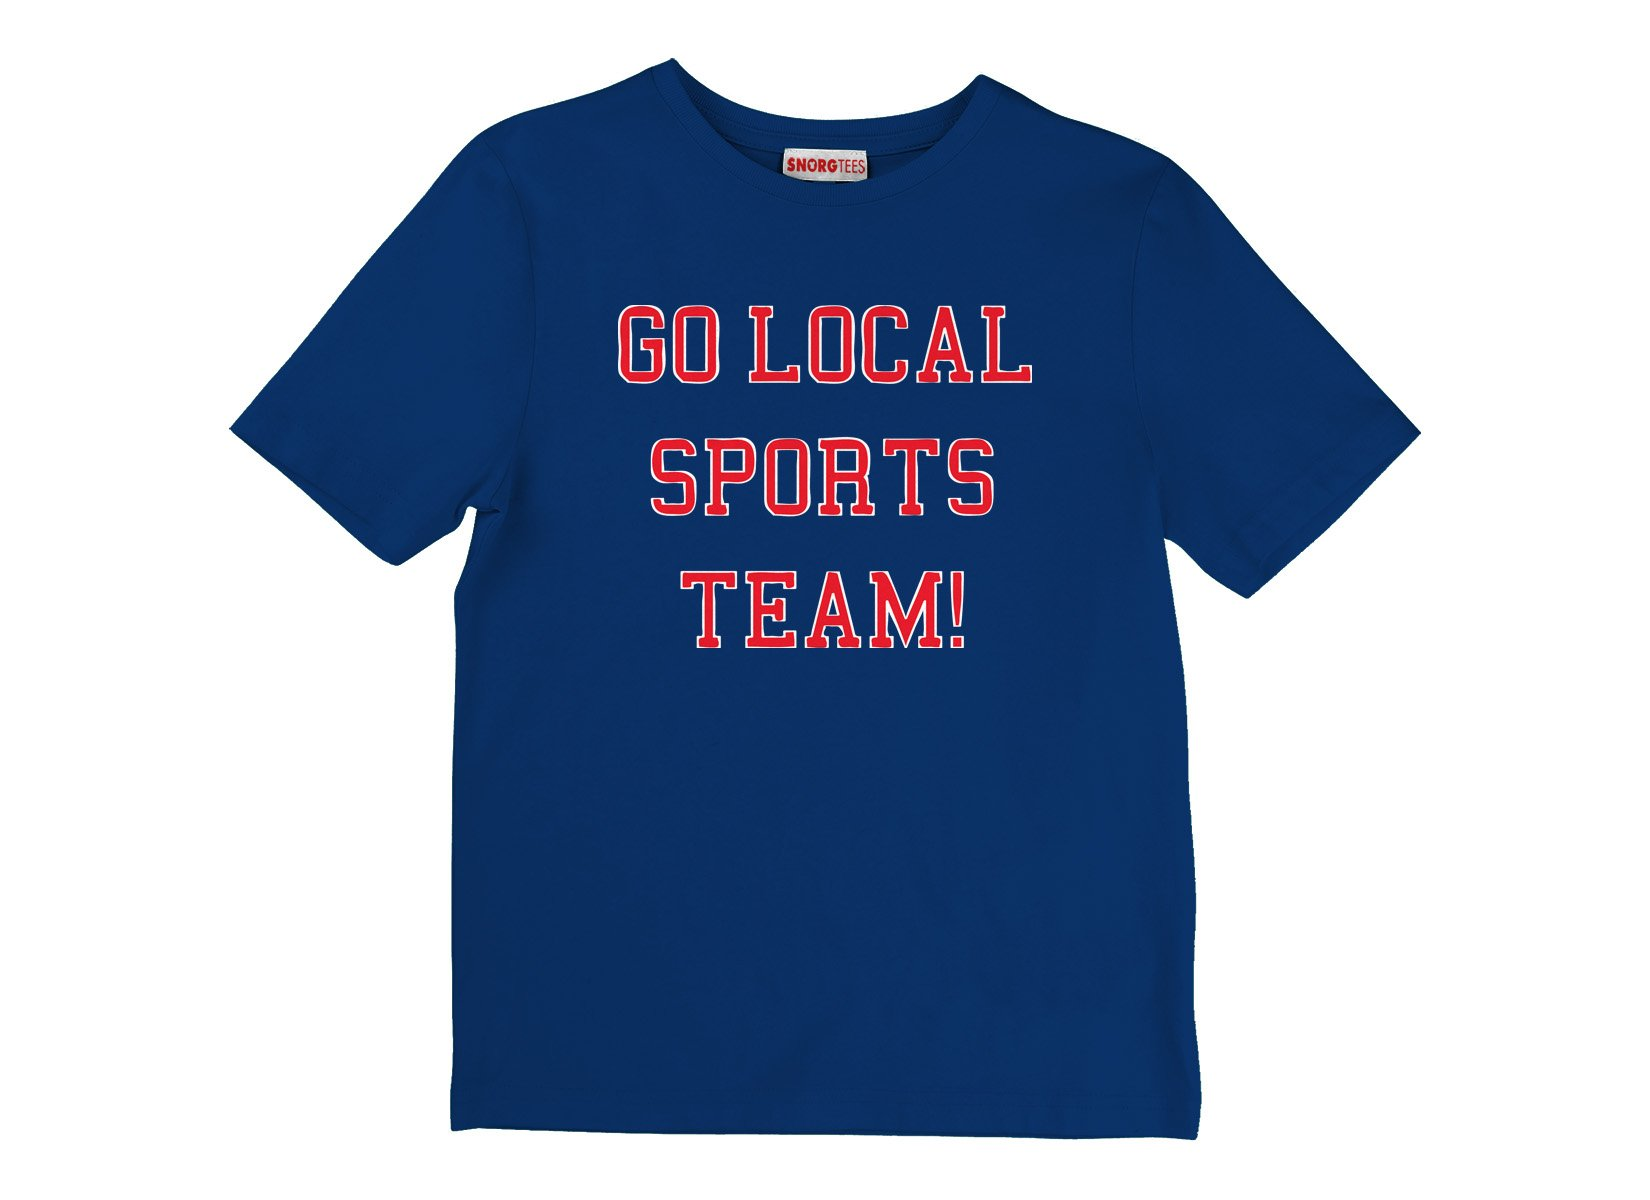 Go Local Sports Team! on Kids T-Shirt